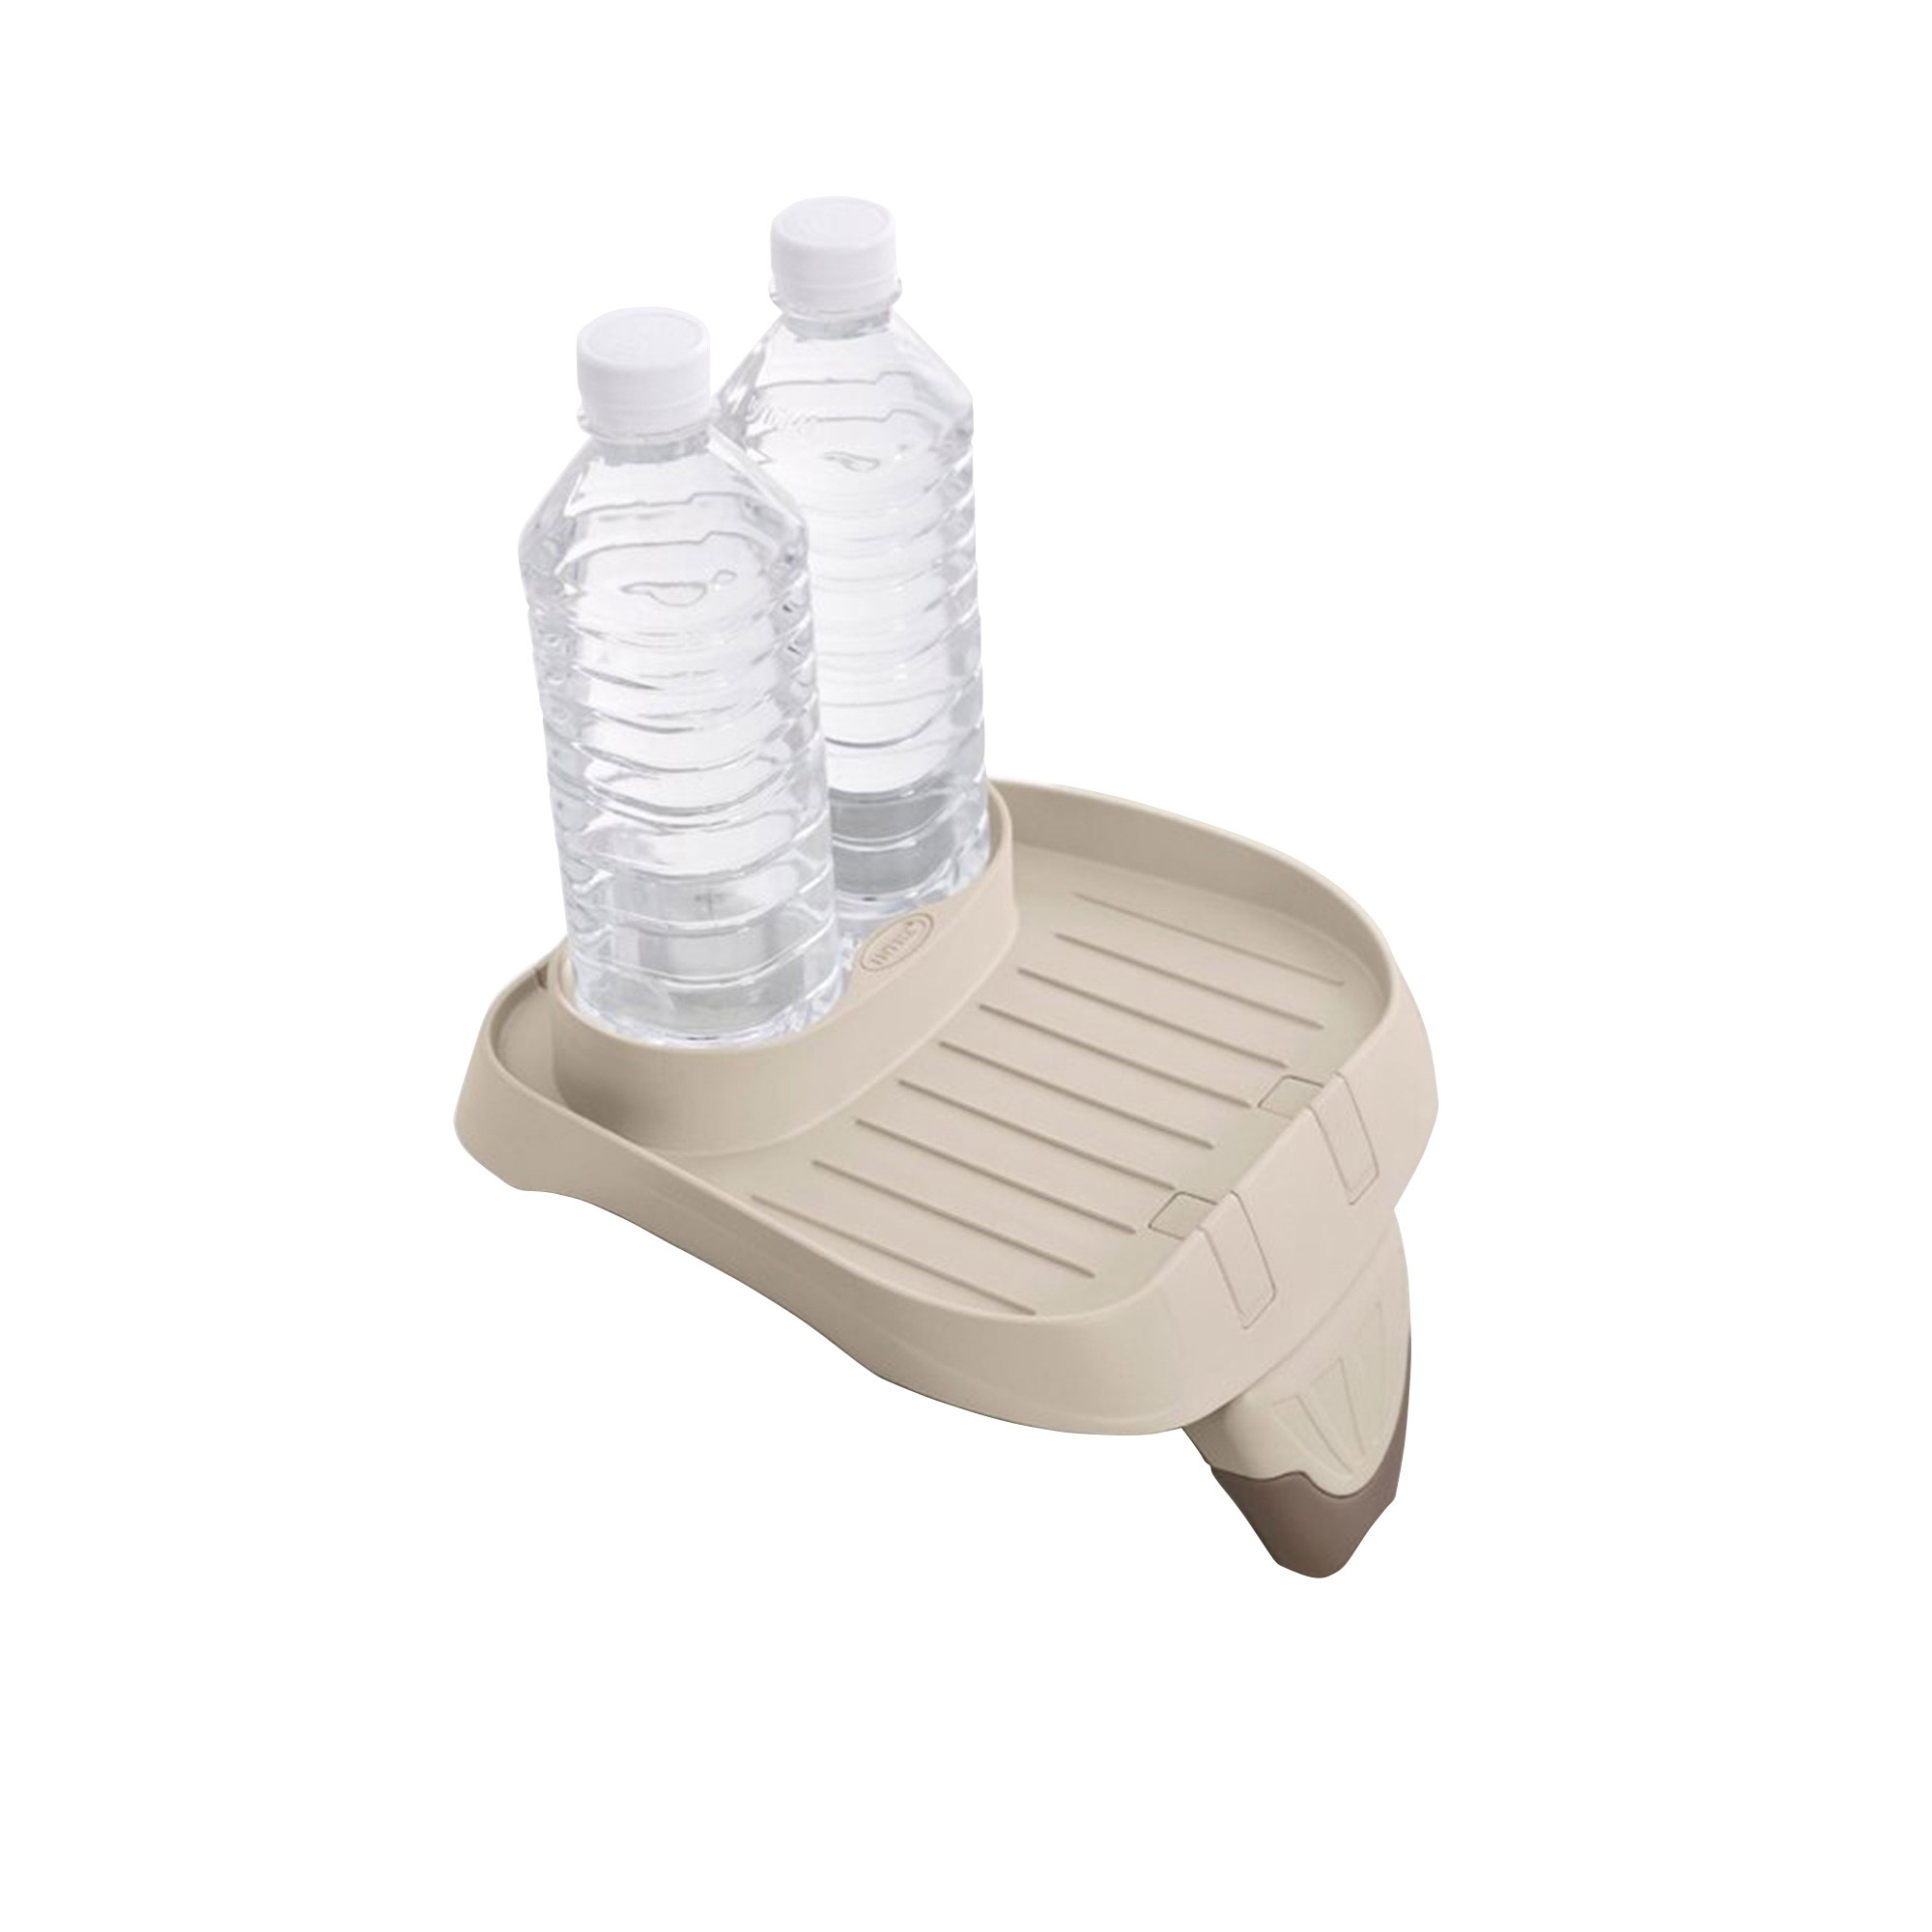 intex pure spa cup holder for intex inflatable spa ebay. Black Bedroom Furniture Sets. Home Design Ideas